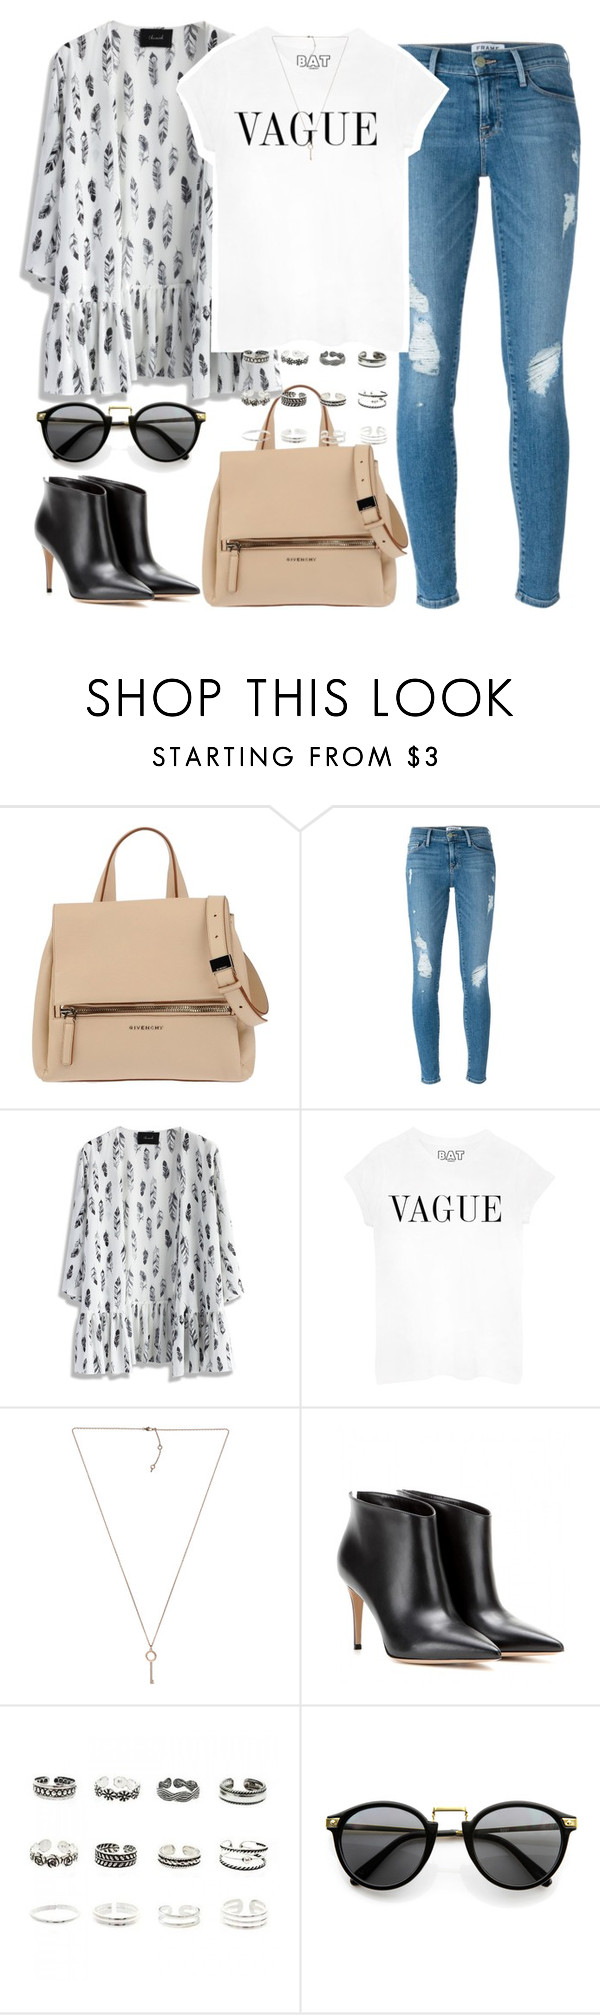 """""""Untitled #70"""" by ailynlovespayne ❤ liked on Polyvore featuring Givenchy, Frame Denim, Chicwish, Michael Kors, Gianvito Rossi and Retrò"""